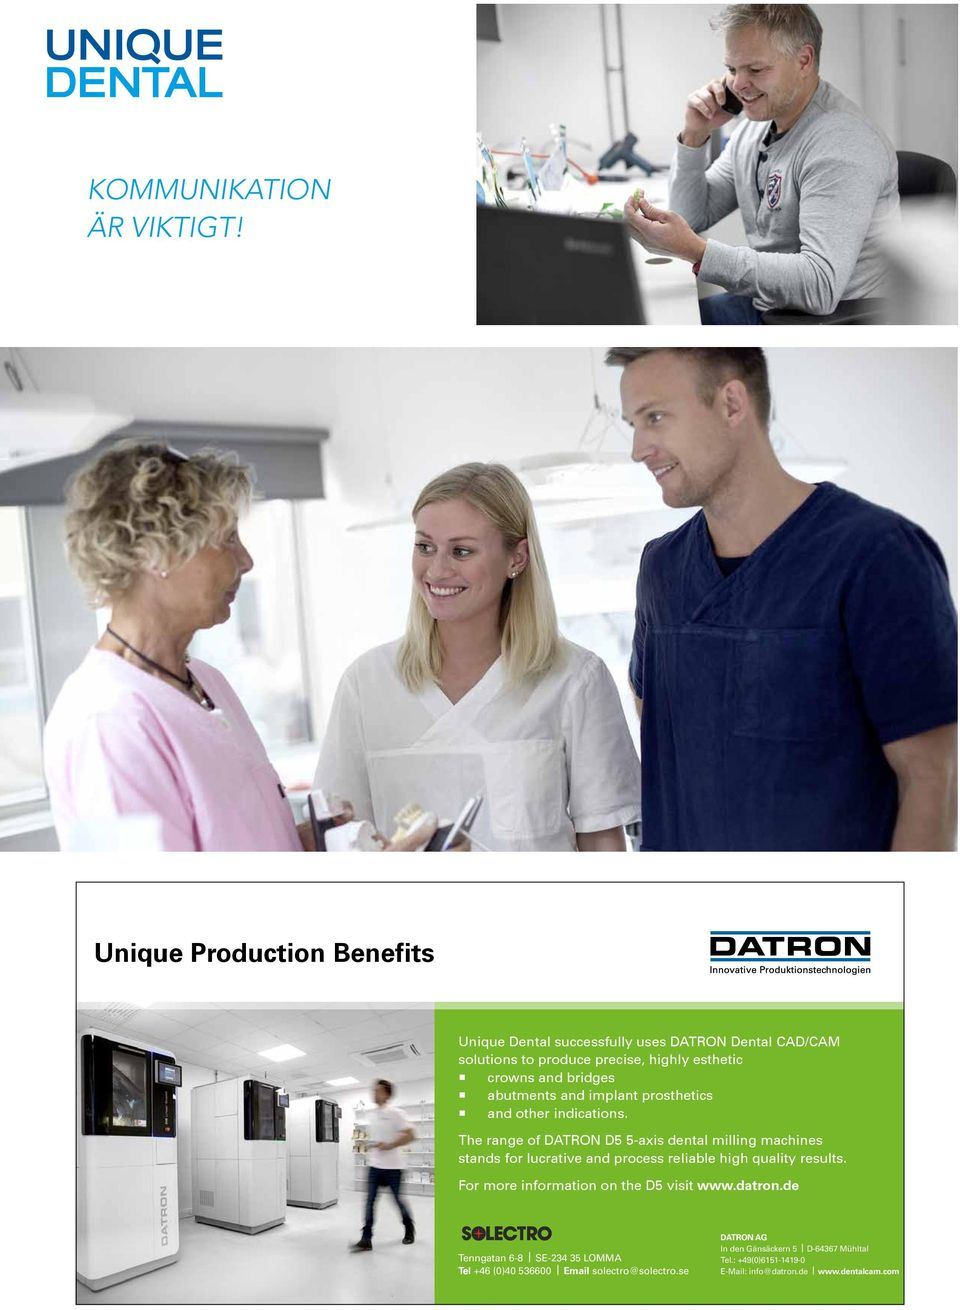 implant prosthetics and other indications. The range of DATRON D5 5-axis dental milling machines stands for lucrative and process reliable high quality results.